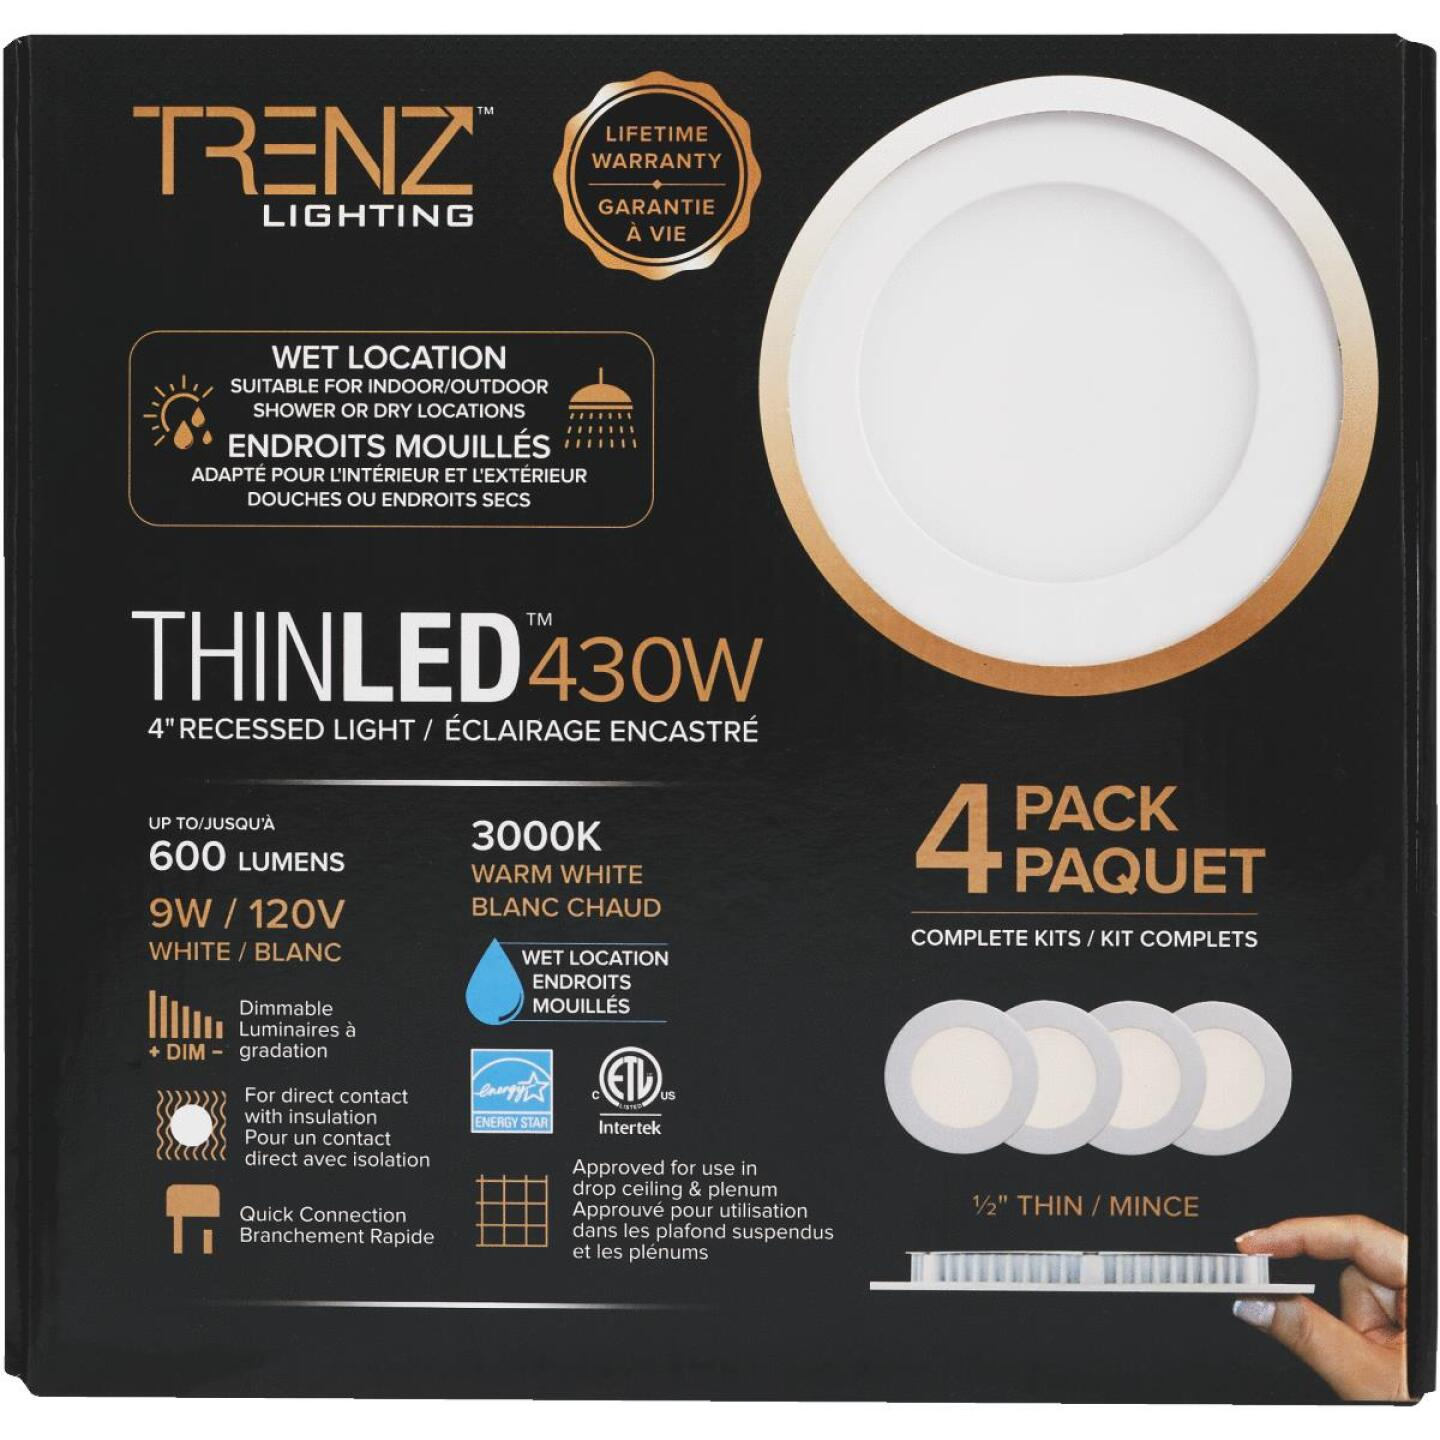 Liteline Trenz ThinLED 4 In. New Construction/Remodel IC Rated White 600 Lm. 3000K Recessed Light Kit (4-Pack) Image 2